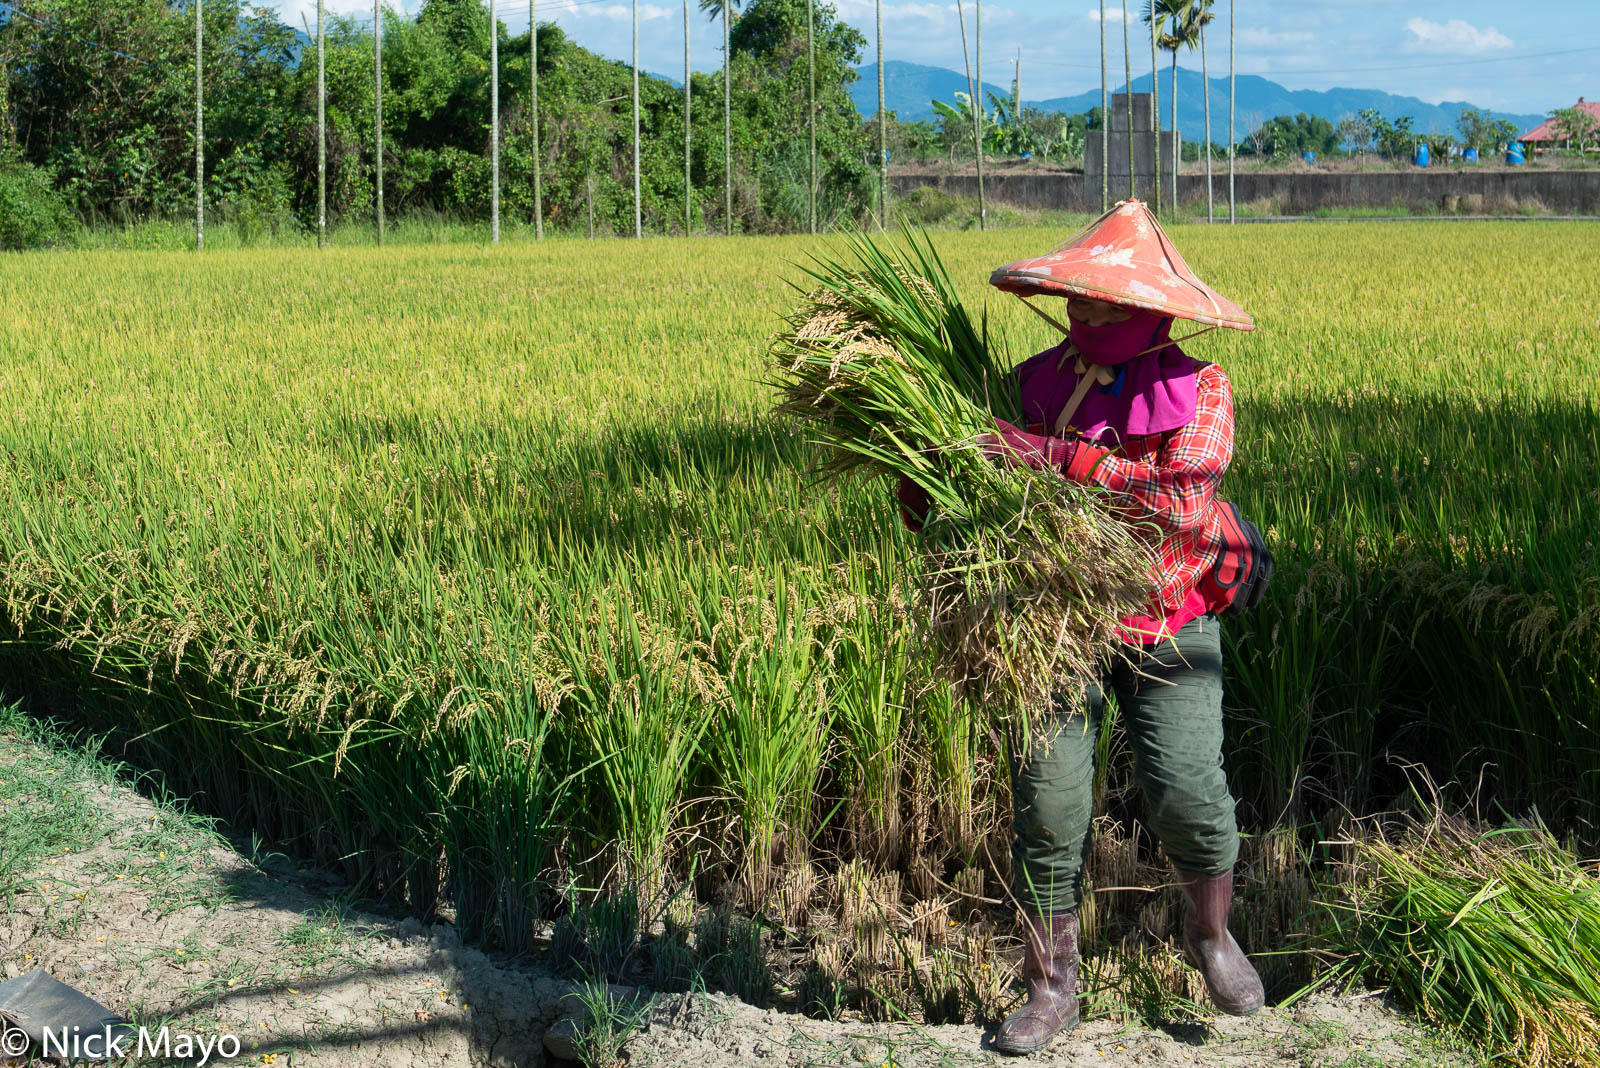 A Shanzihjiao farmer hand harvesting the corner of a paddy rice field where the harvester cannot reach.